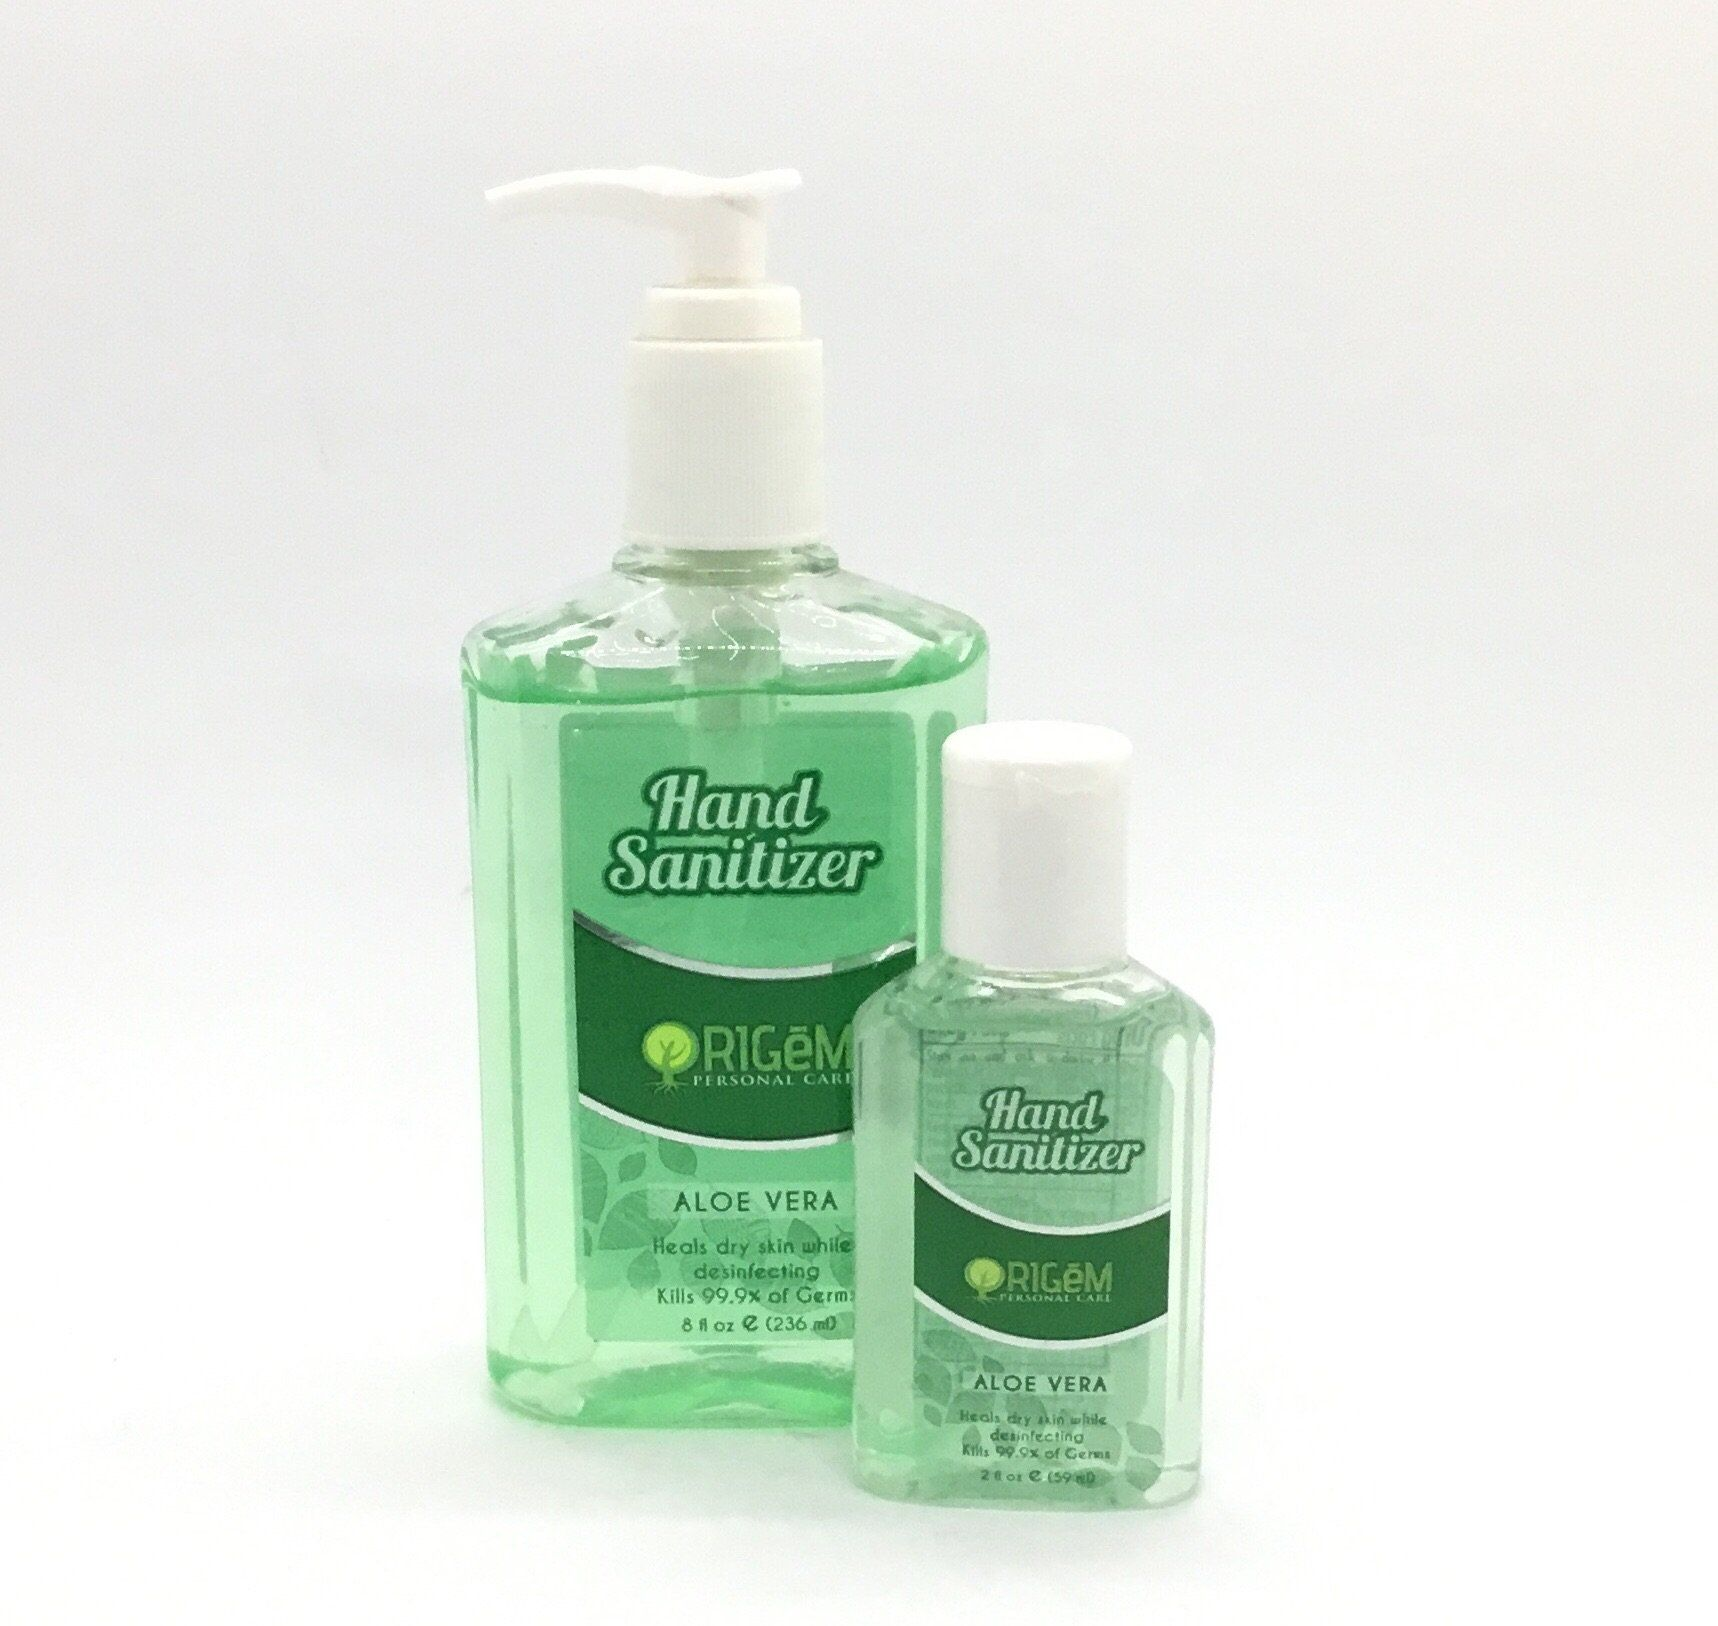 Rigem Hand Sanitizer Hand Sanitizer Hands Beauty Supply